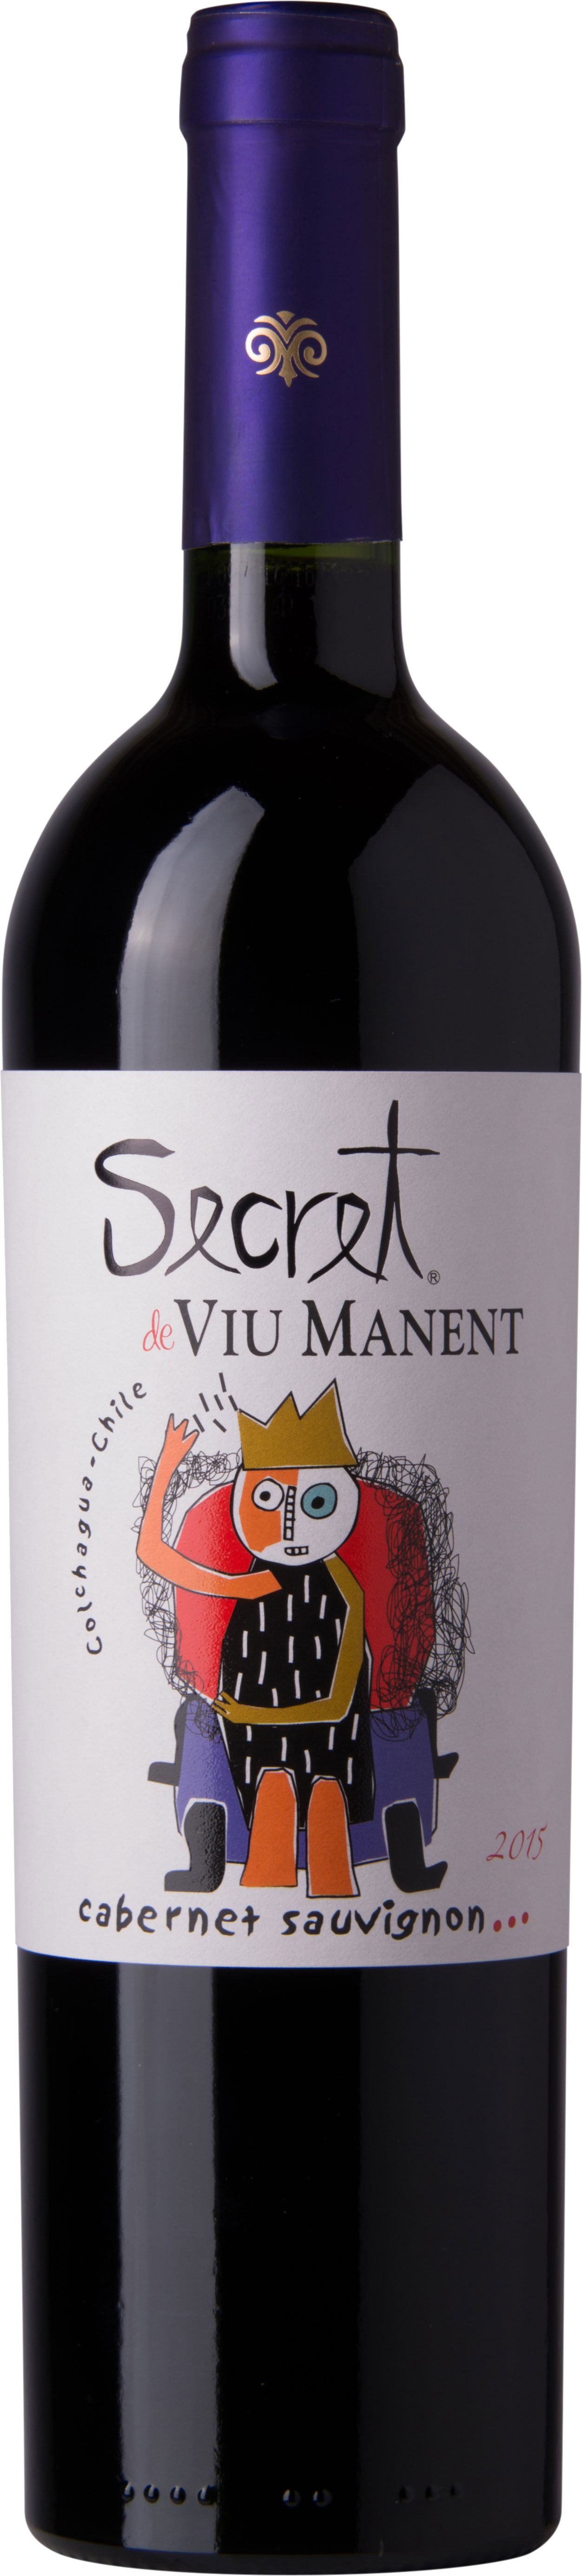 Viu Manent - Secret Cabernet Sauvignon 2015 6x 75cl Bottles